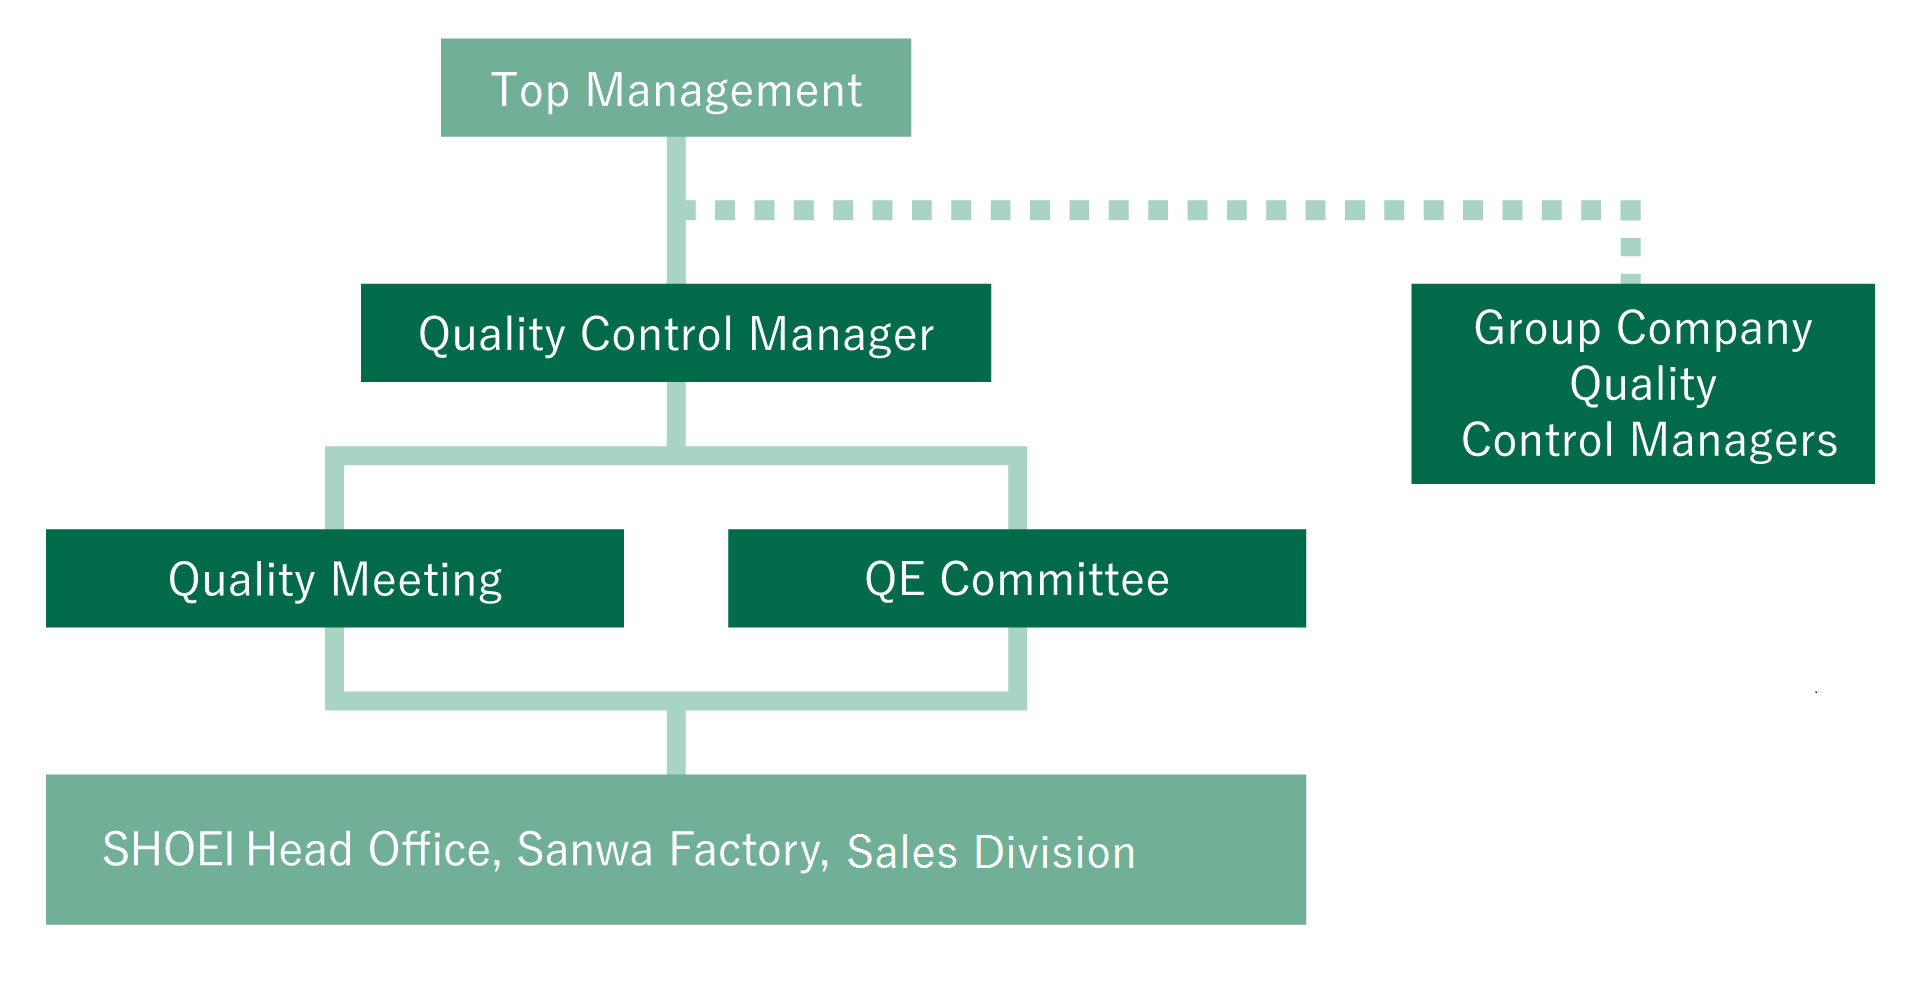 QUALITY MANAGEMENT SYSTEM STRUCTURE